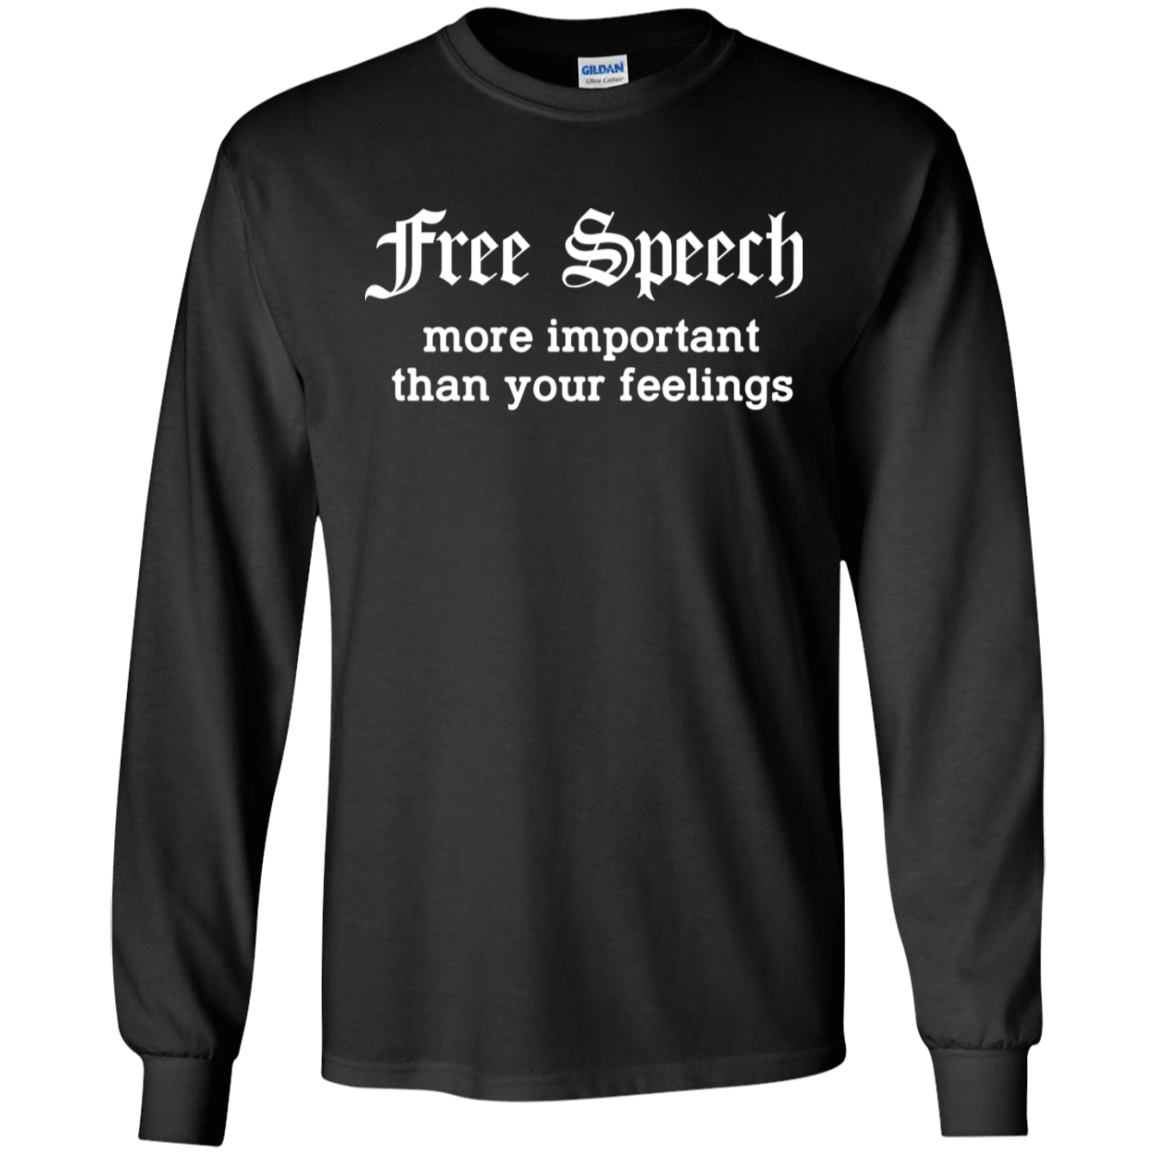 Free Speech More Important Than Your Feelings 30-186-74209398-333 - Tee Ript